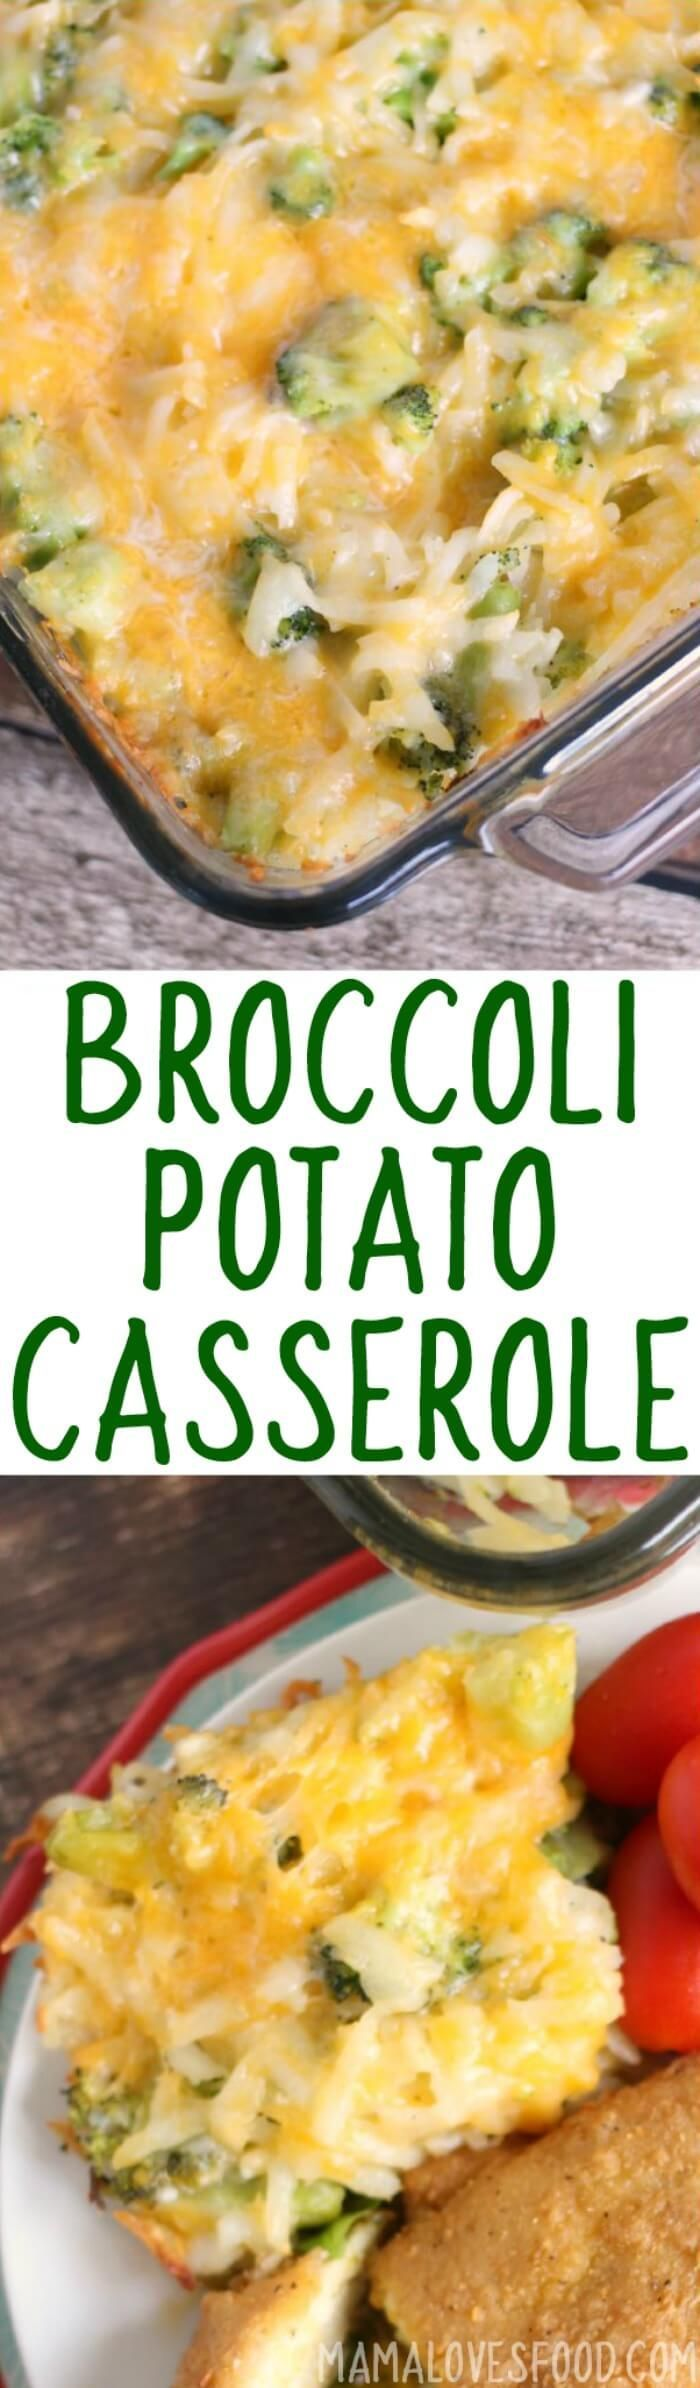 This Broccoli Cheese Potato Casserole recipe is the perfect simple dinner idea the whole family will love. Add chicken and freeze for your next busy night!